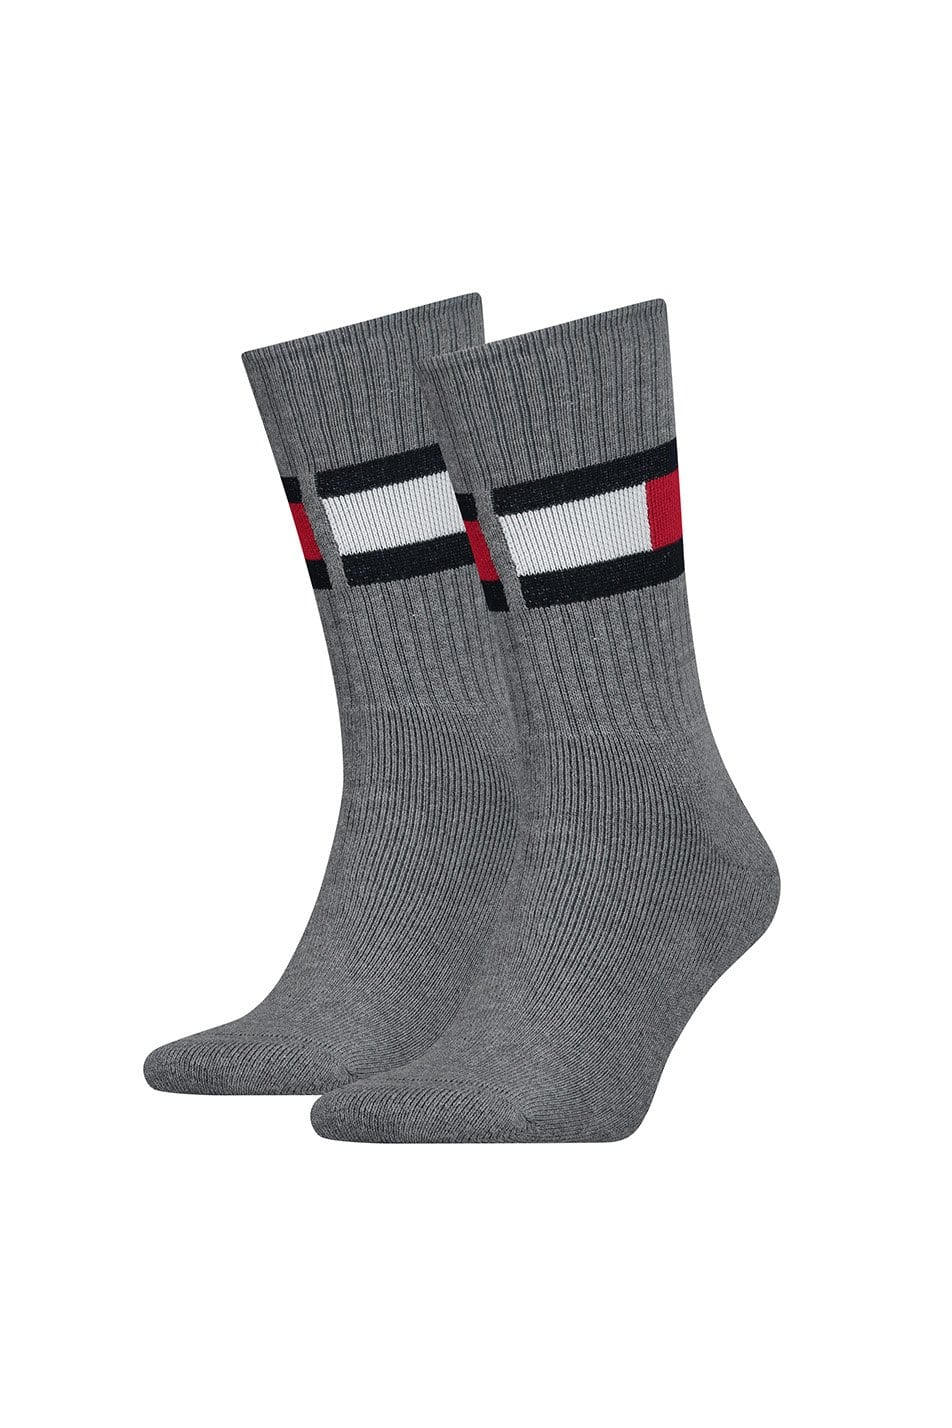 Tommy Hilfiger Original Flag Socks